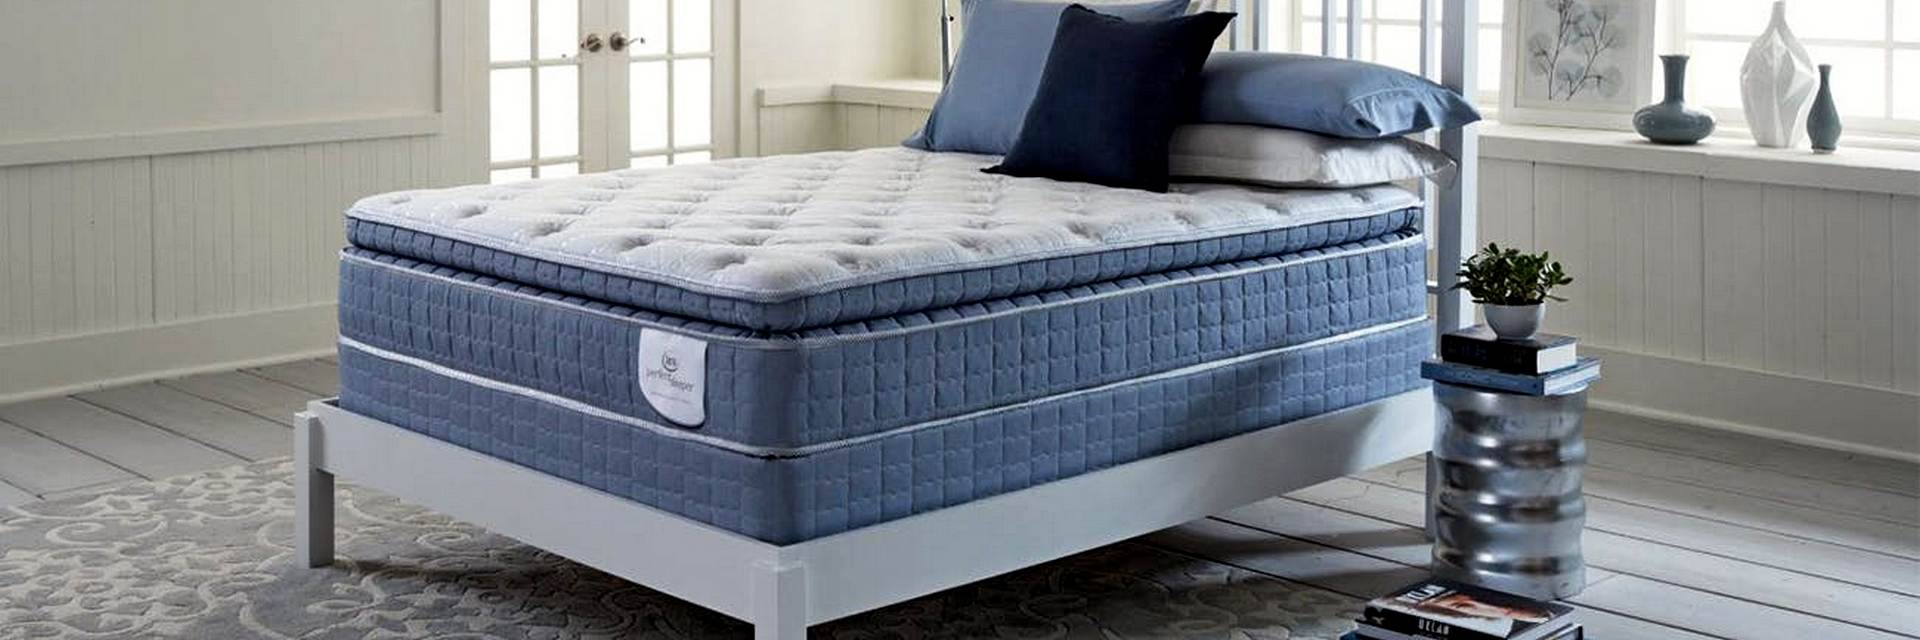 10 Best Mattresses Under 300 Apr 2020 Reviews Buying Guide